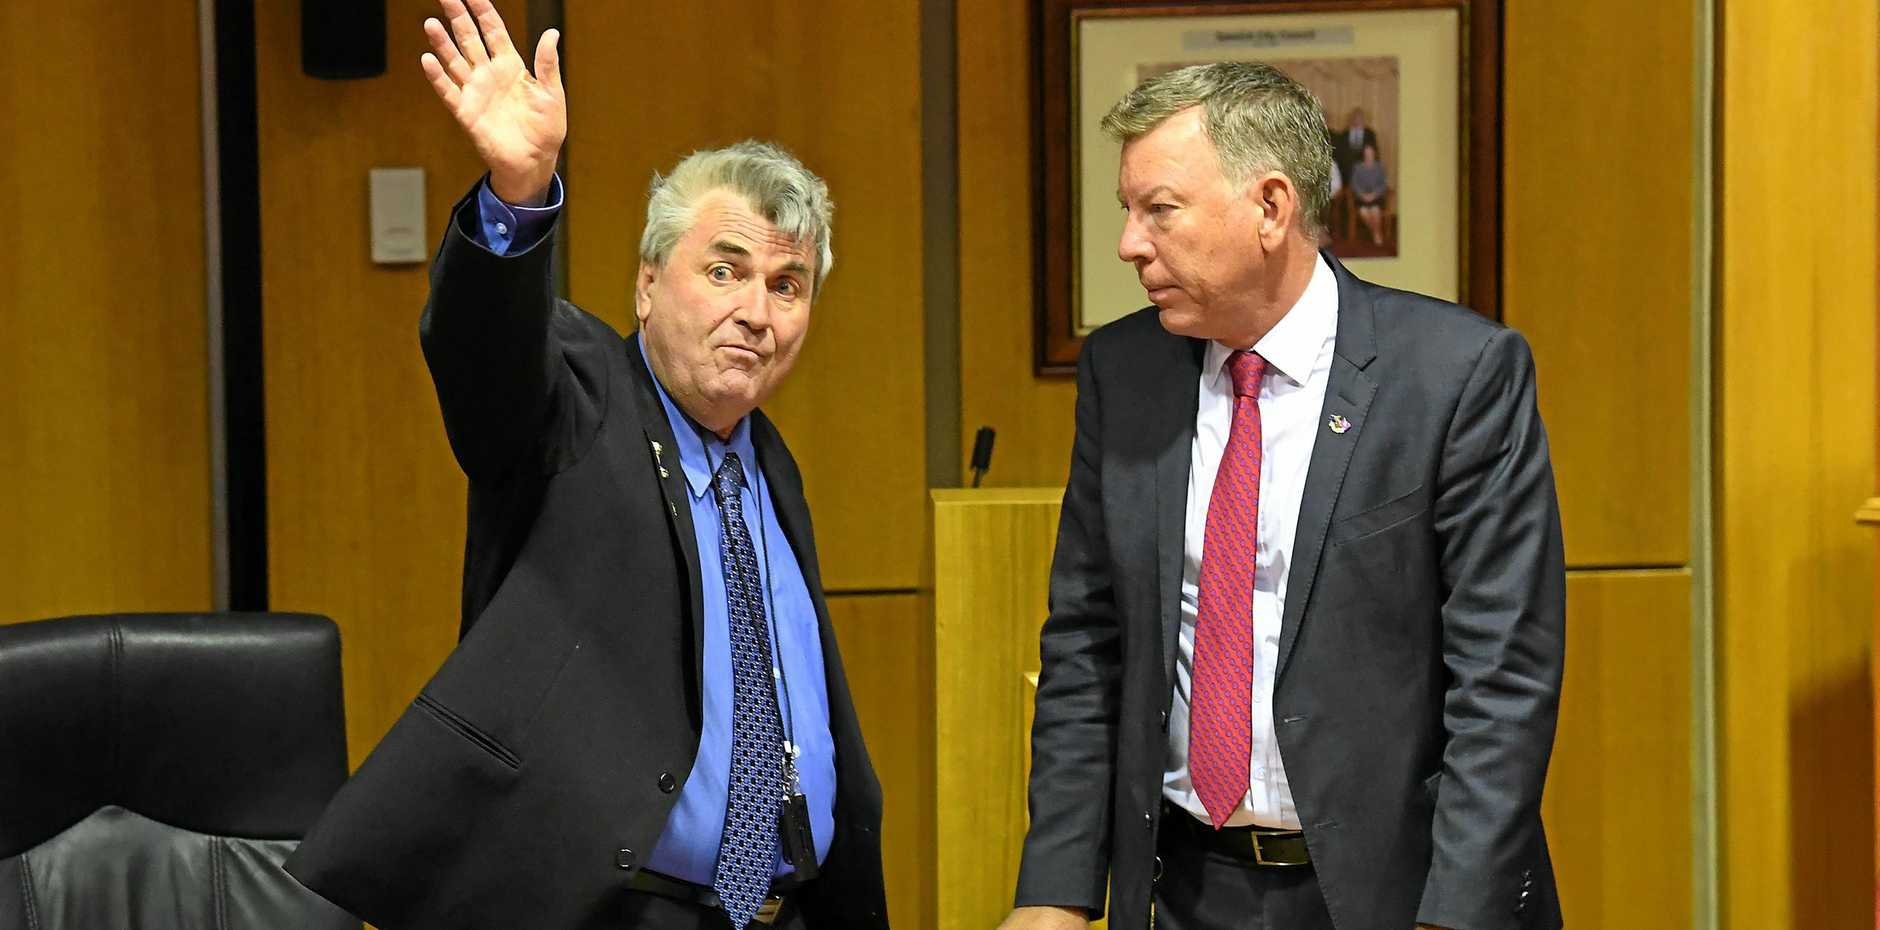 Cr David Pahlke waves goodbye as acting Mayor Wayne Wendt (right) looks on following the Ipswich City Council's final meeting at the Ipswich City Council Chambers in August.